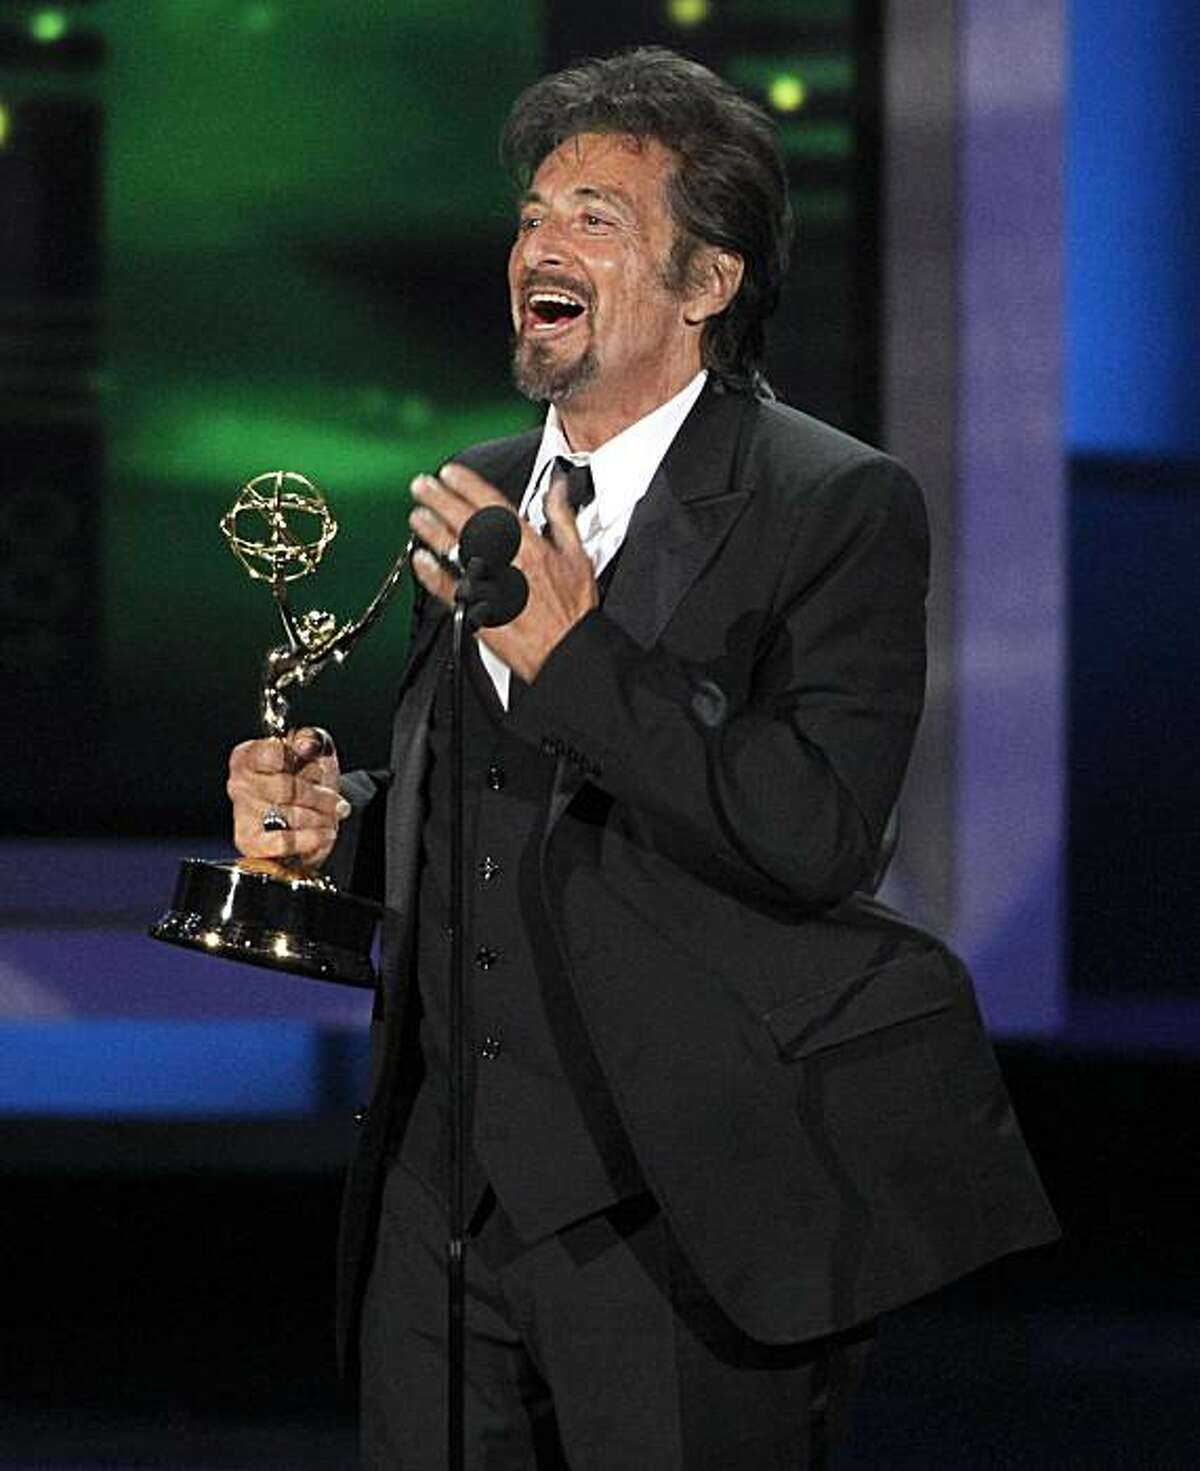 Al Pacino acknowledges Dr. Jack Kevorkian as he accepts the award for outstanding lead actor in a miniseries or movie during the 62nd Primetime Emmy Awards Sunday, Aug. 29, 2010, in Los Angeles.